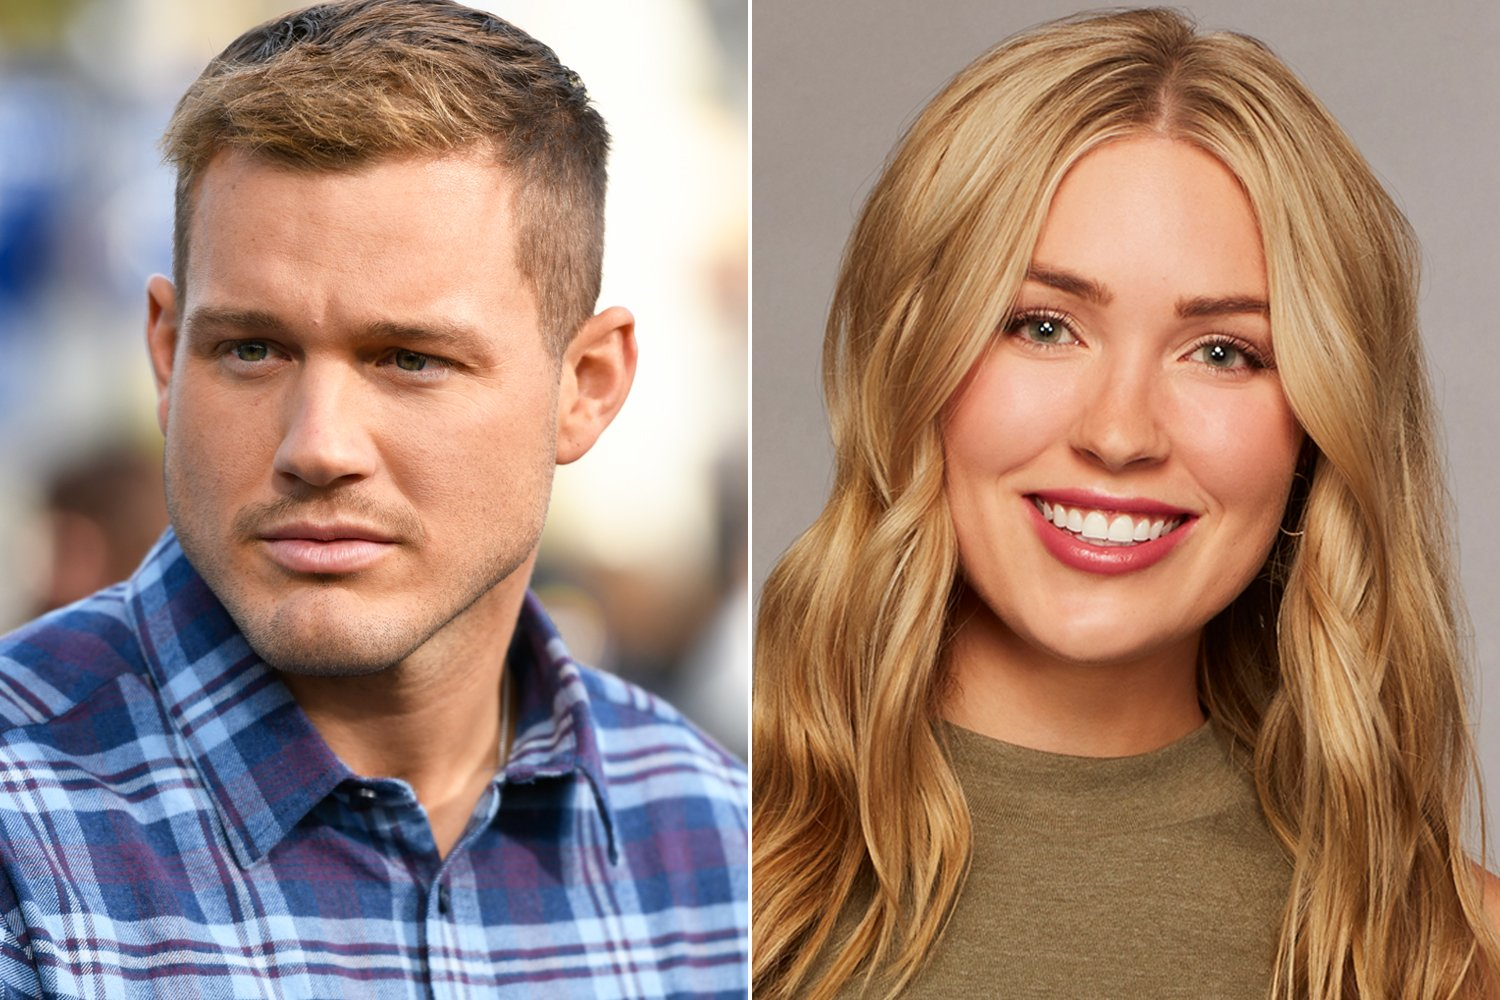 Cassie Randolph Gets Restraining Order Against Her Ex Colton Underwood After Allegedly Harassing And Stalking Her!